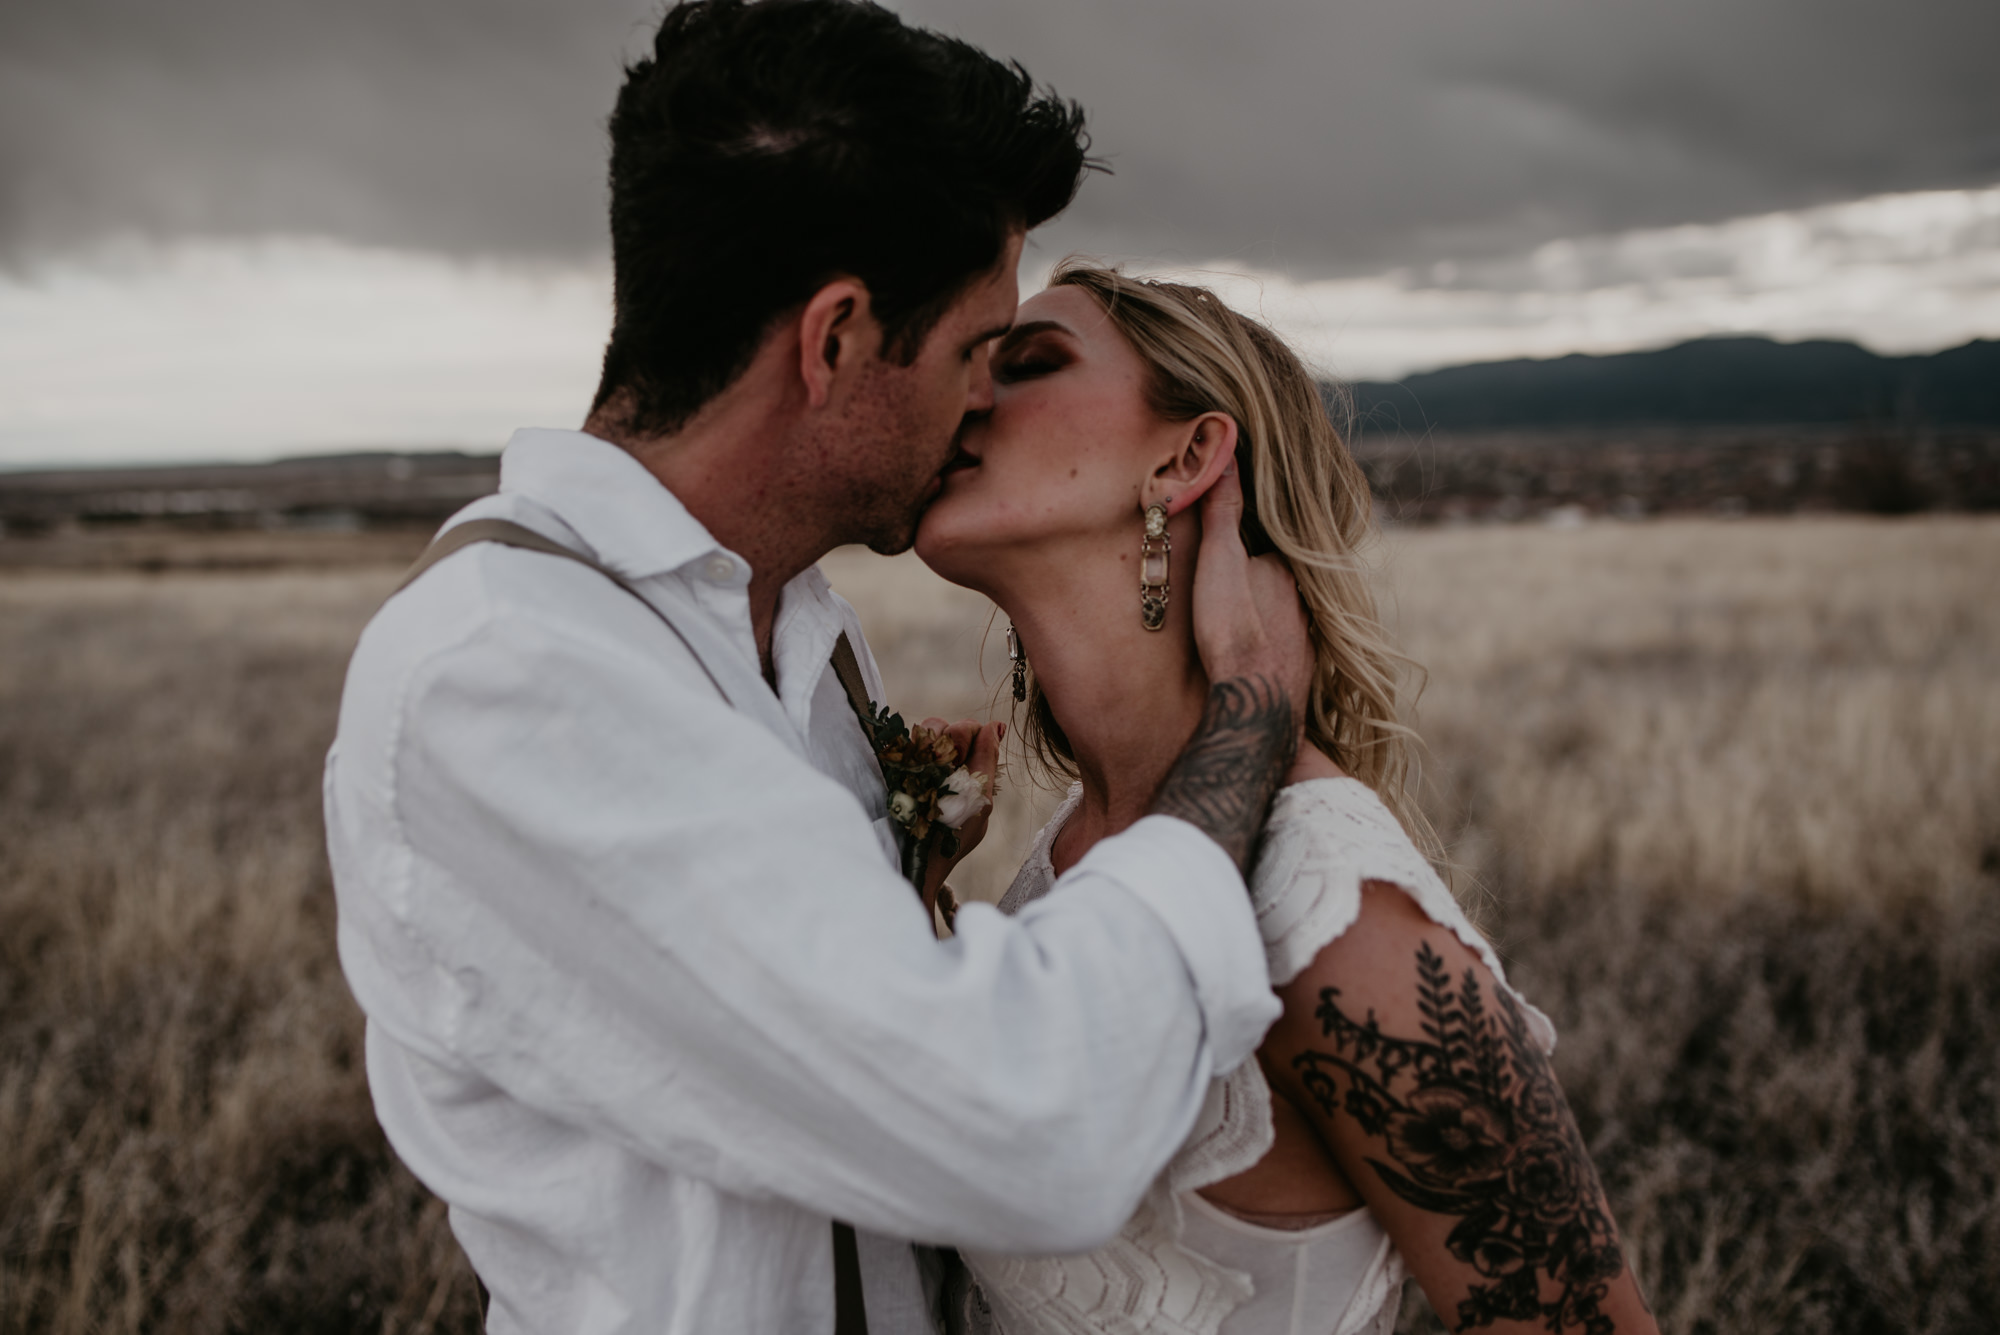 Bride and groom share a romantic kiss under dark grey and moody skies.